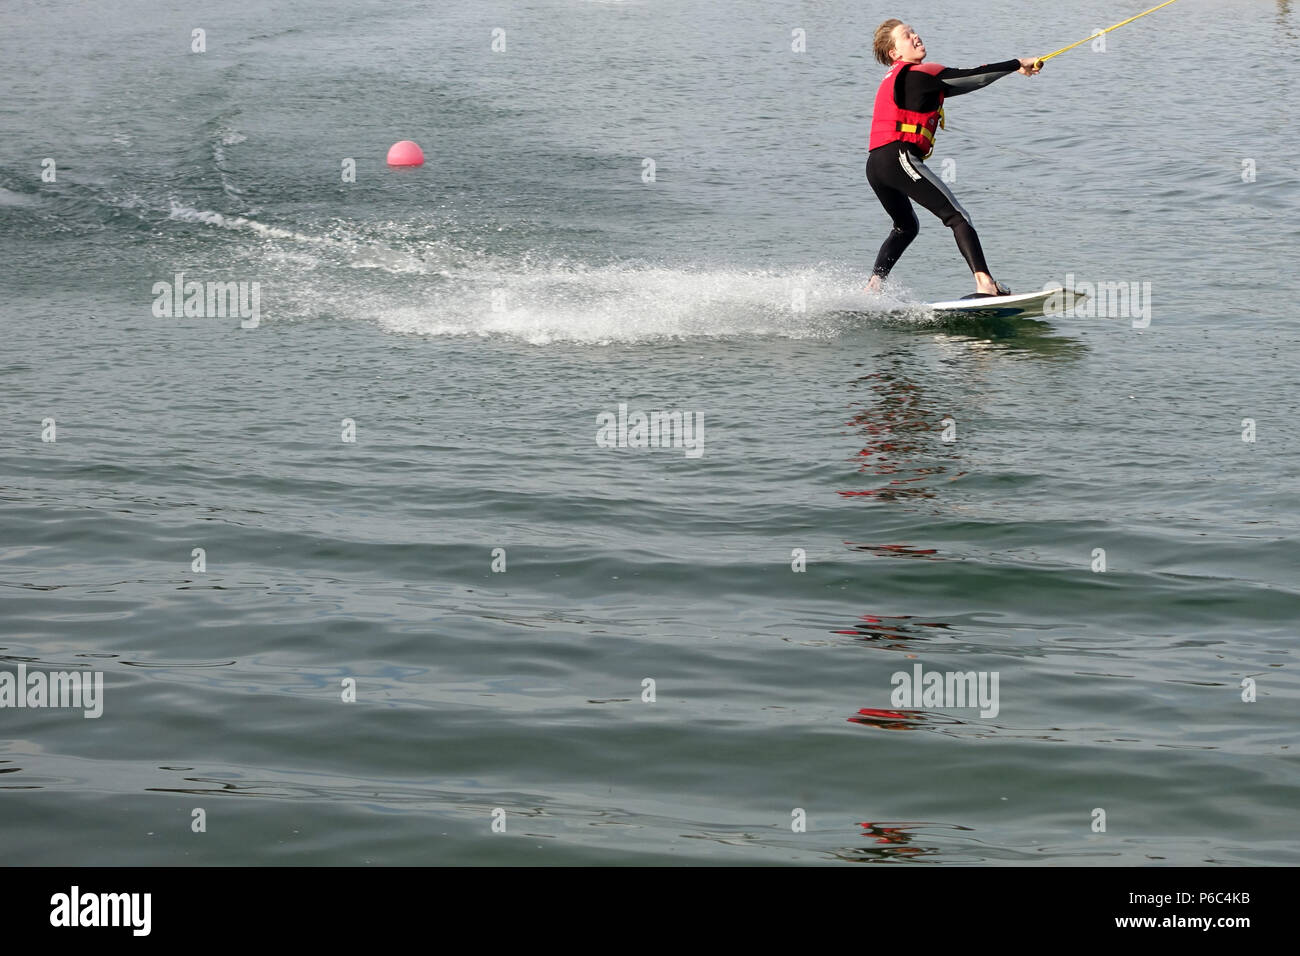 Zossen, Germany - Boy at wakeboarding - Stock Image